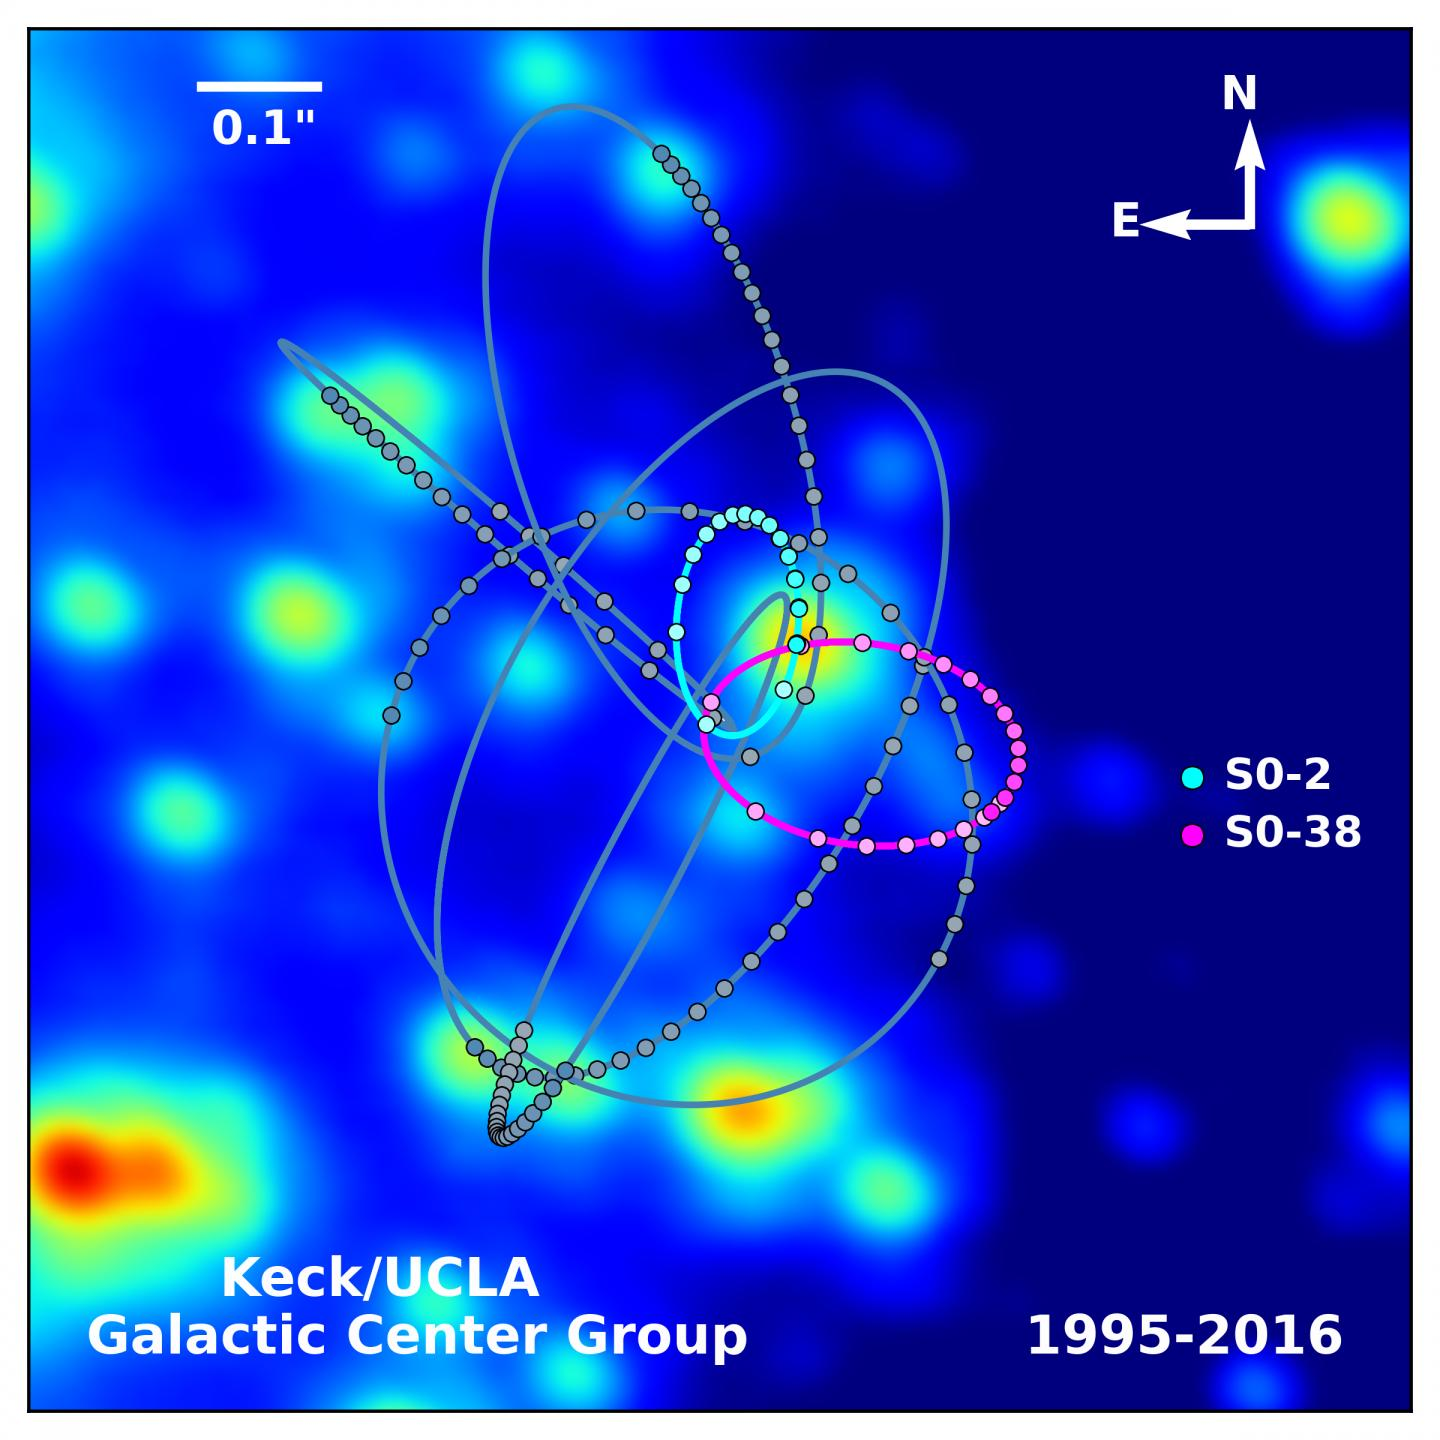 Star is confirmed single and ready to test Einstein's theory